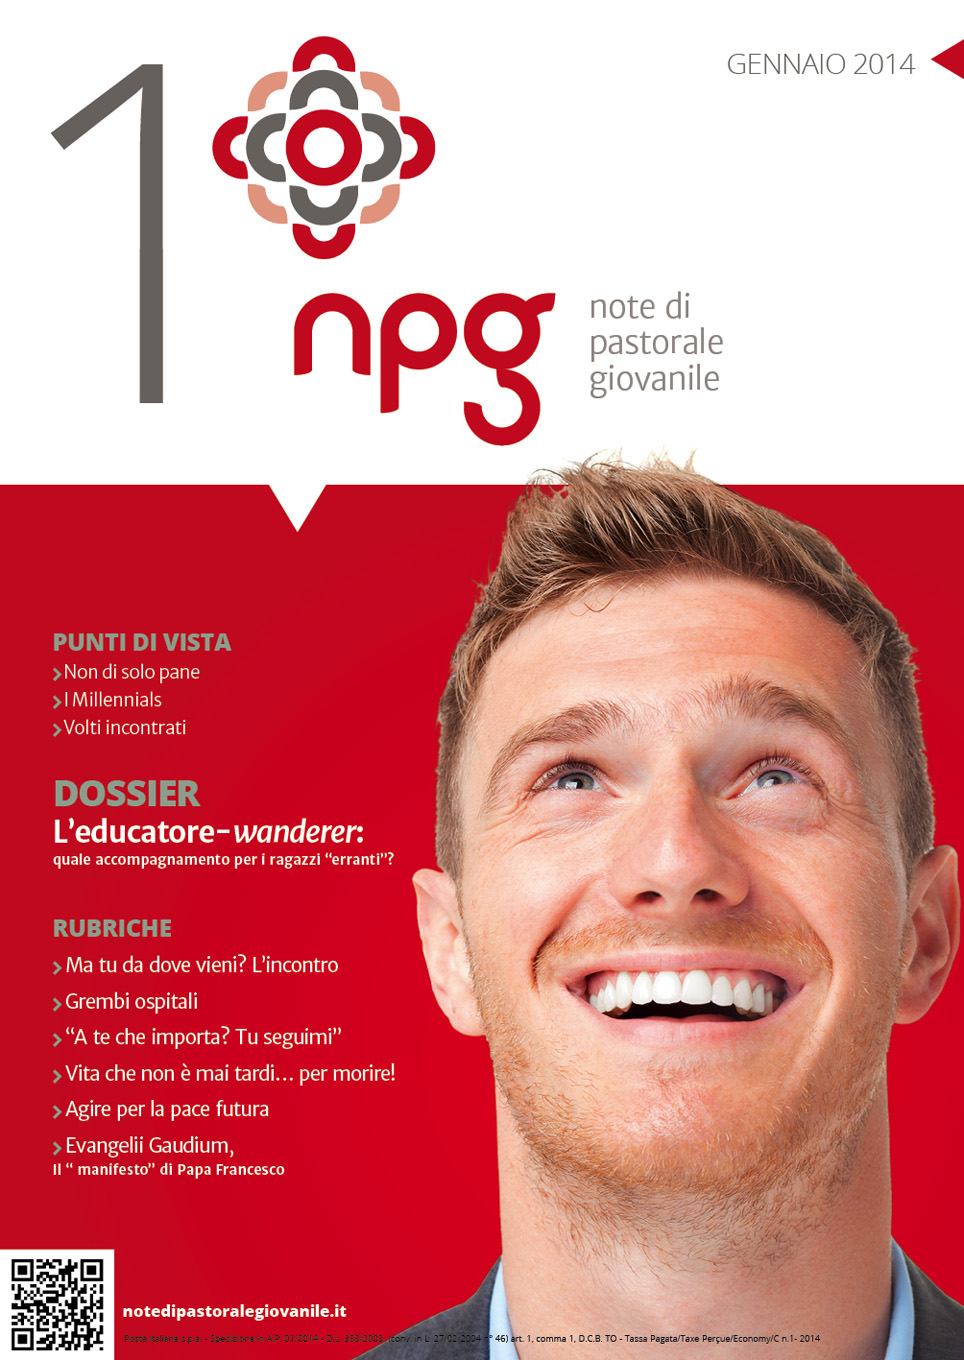 covergennaio2014NPG